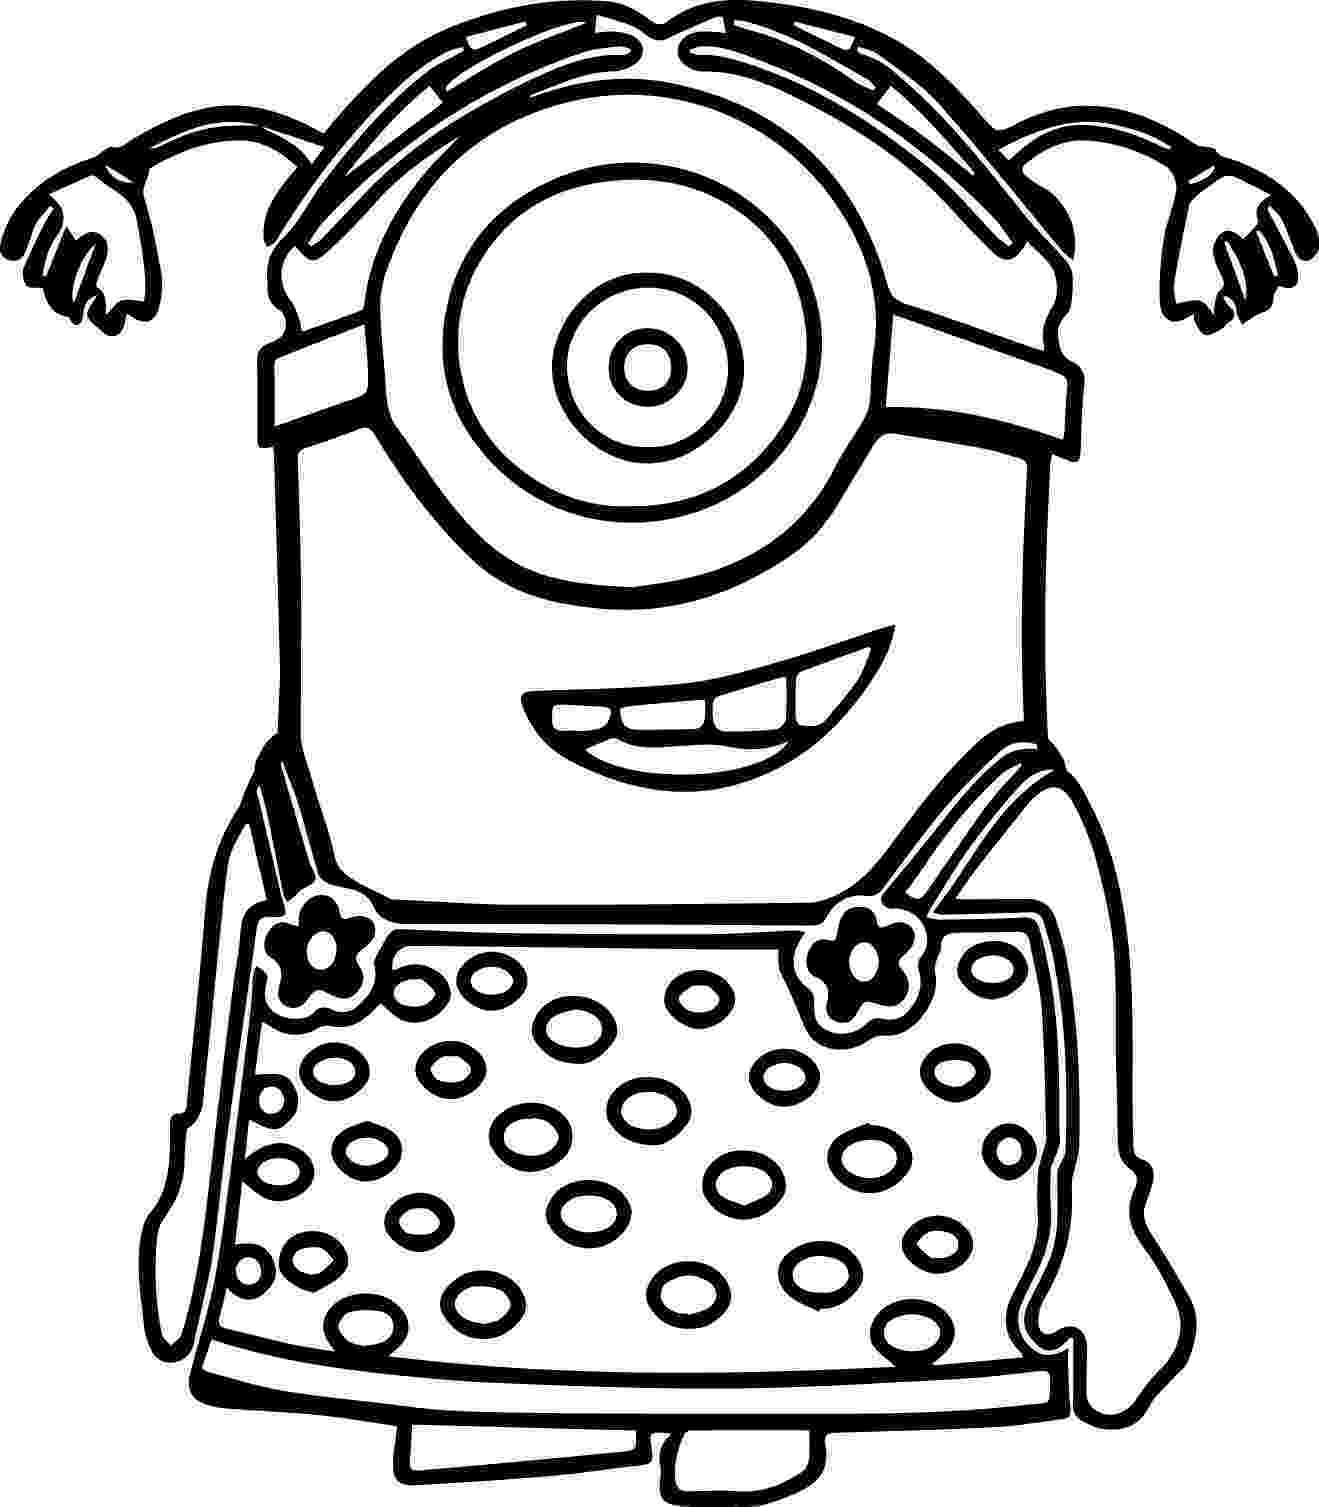 minions pictures to colour minions pictures to colour colour to minions pictures